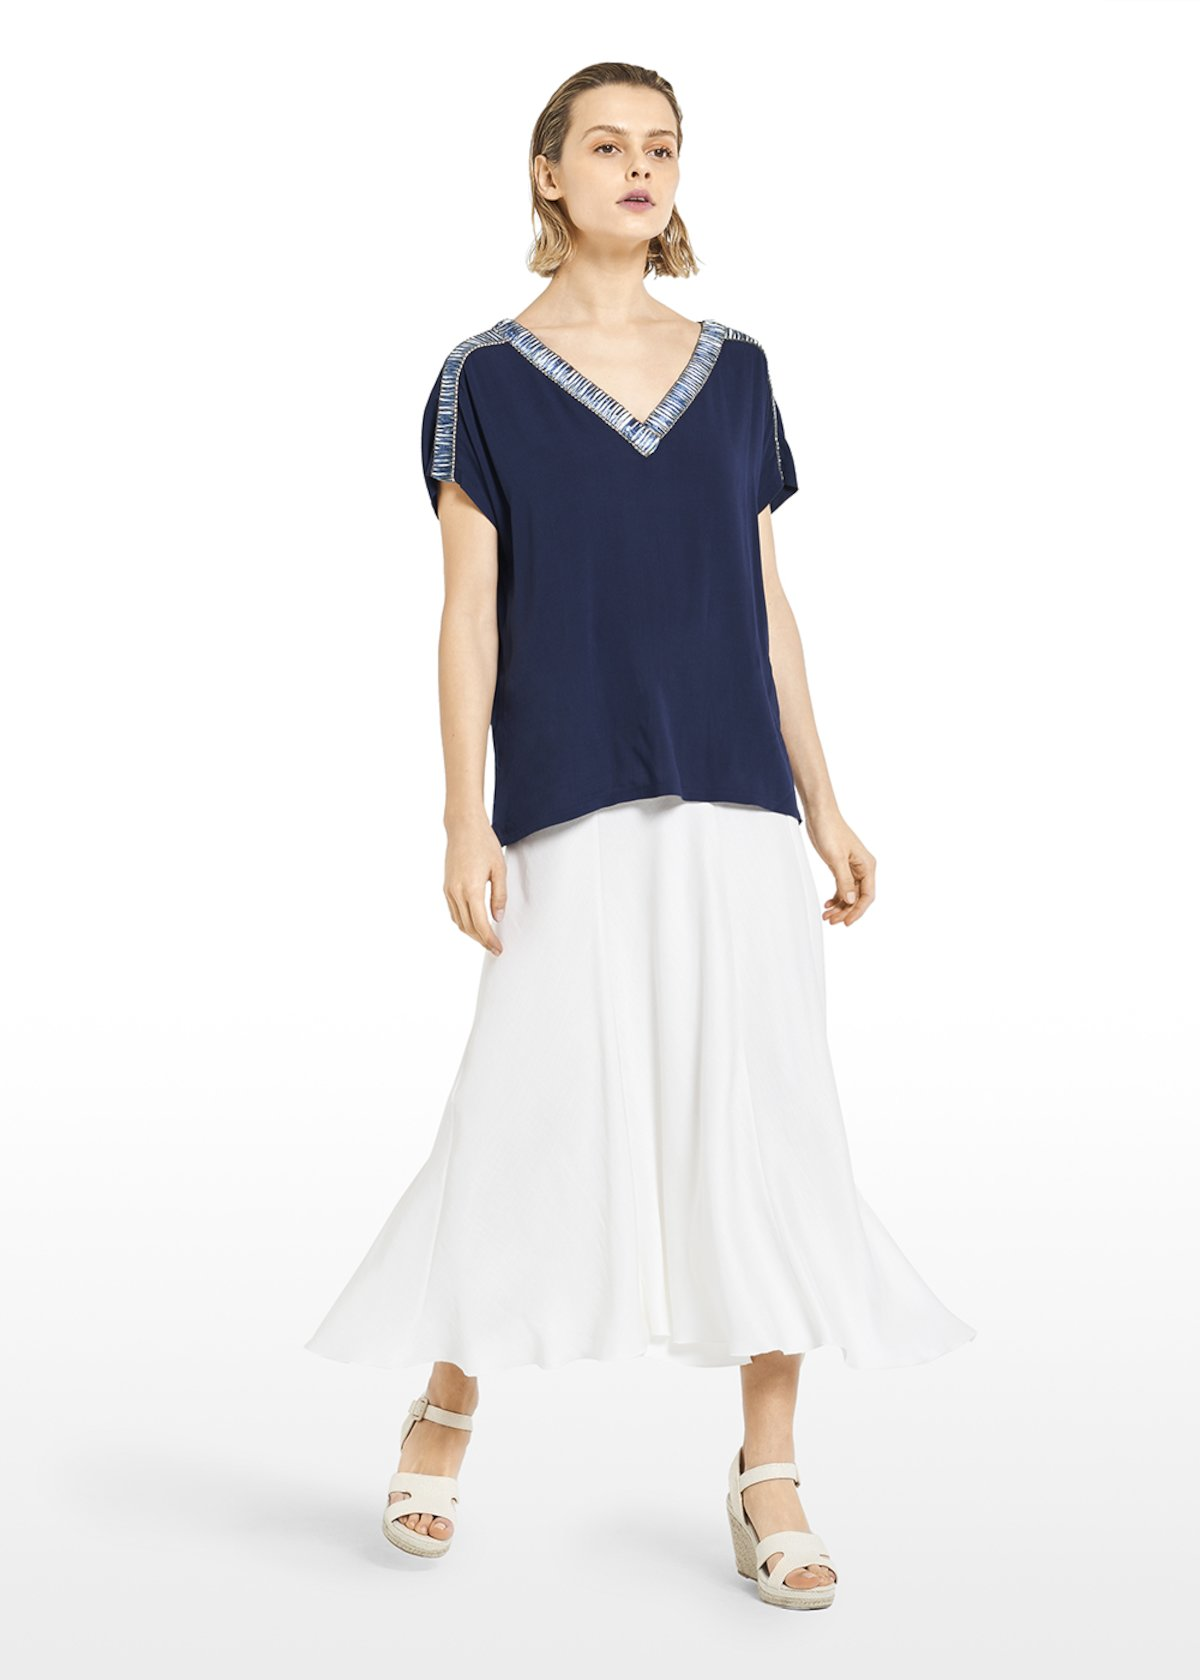 Sirena T-shirt with trimmed neckline detail - Medium Blue - Woman - Category image